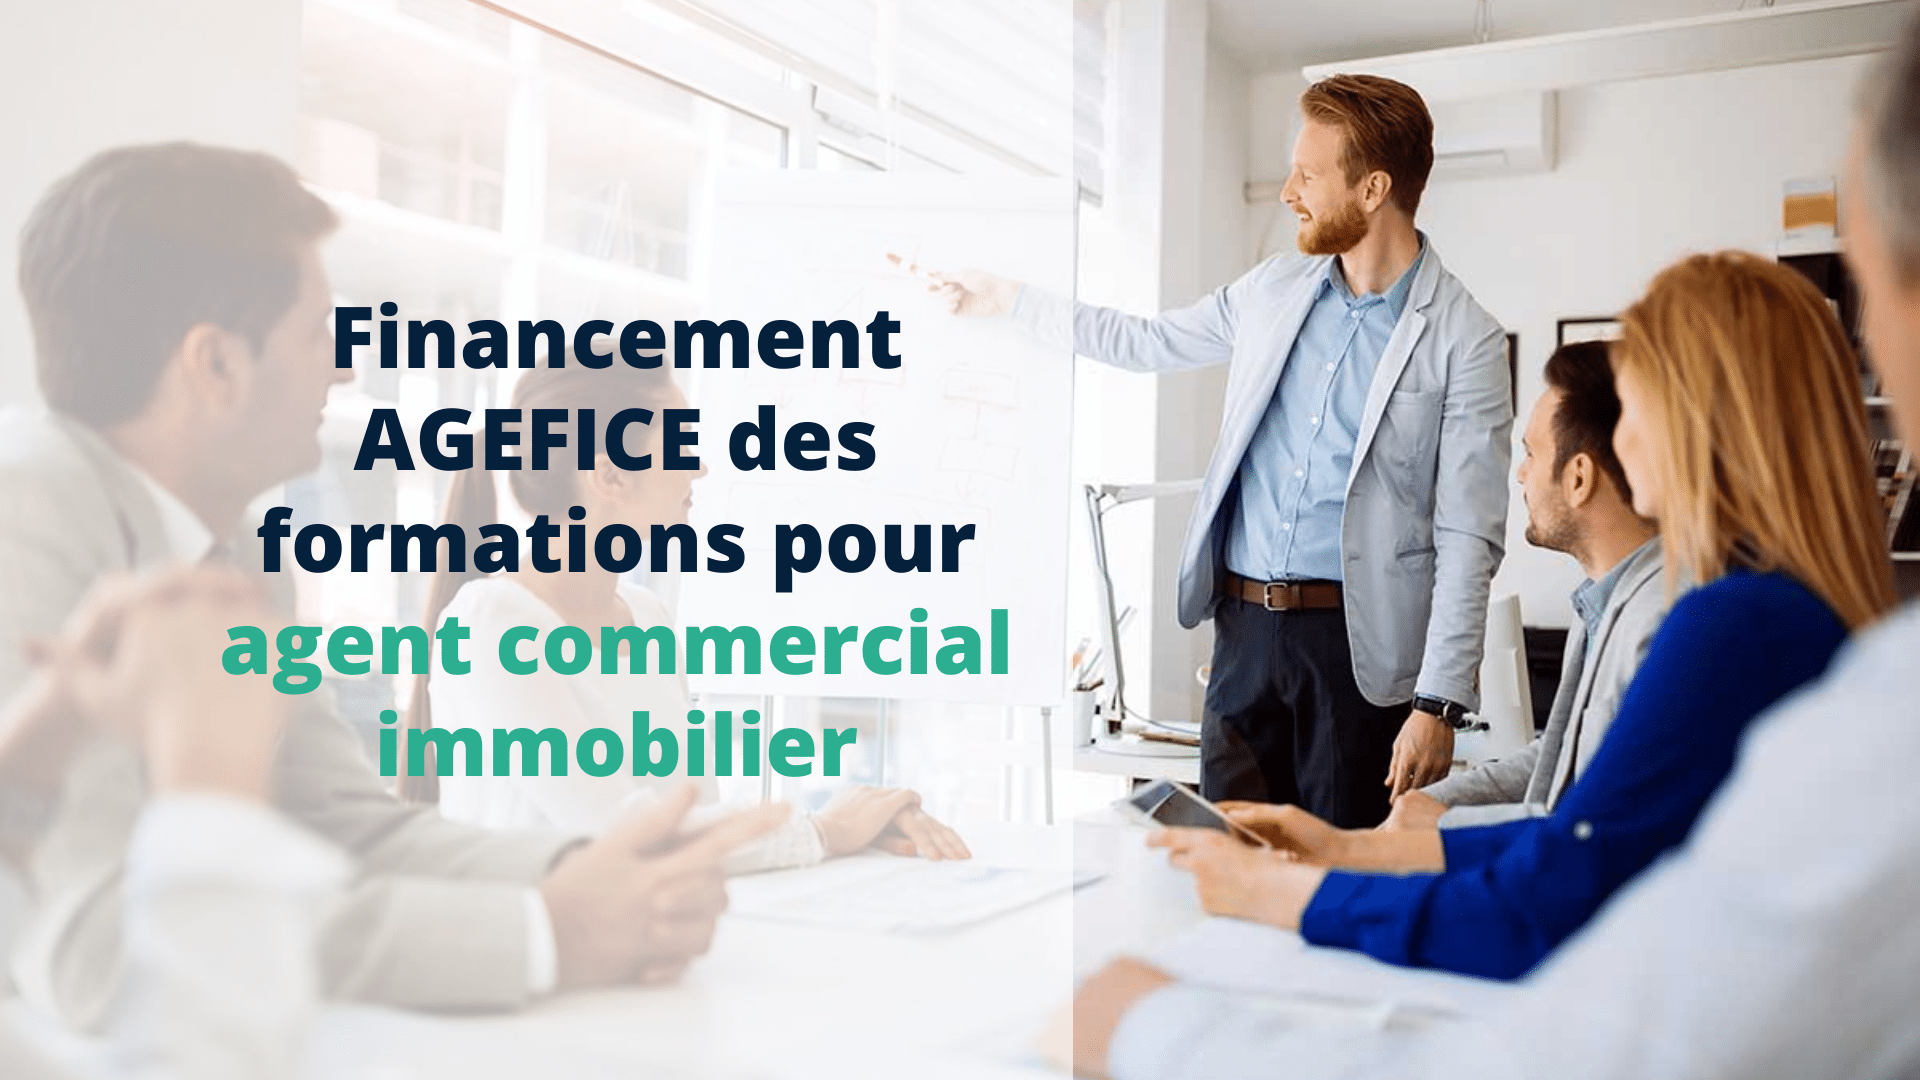 Financement AGEFICE des formations pour agent commercial immobilier - Start Learning